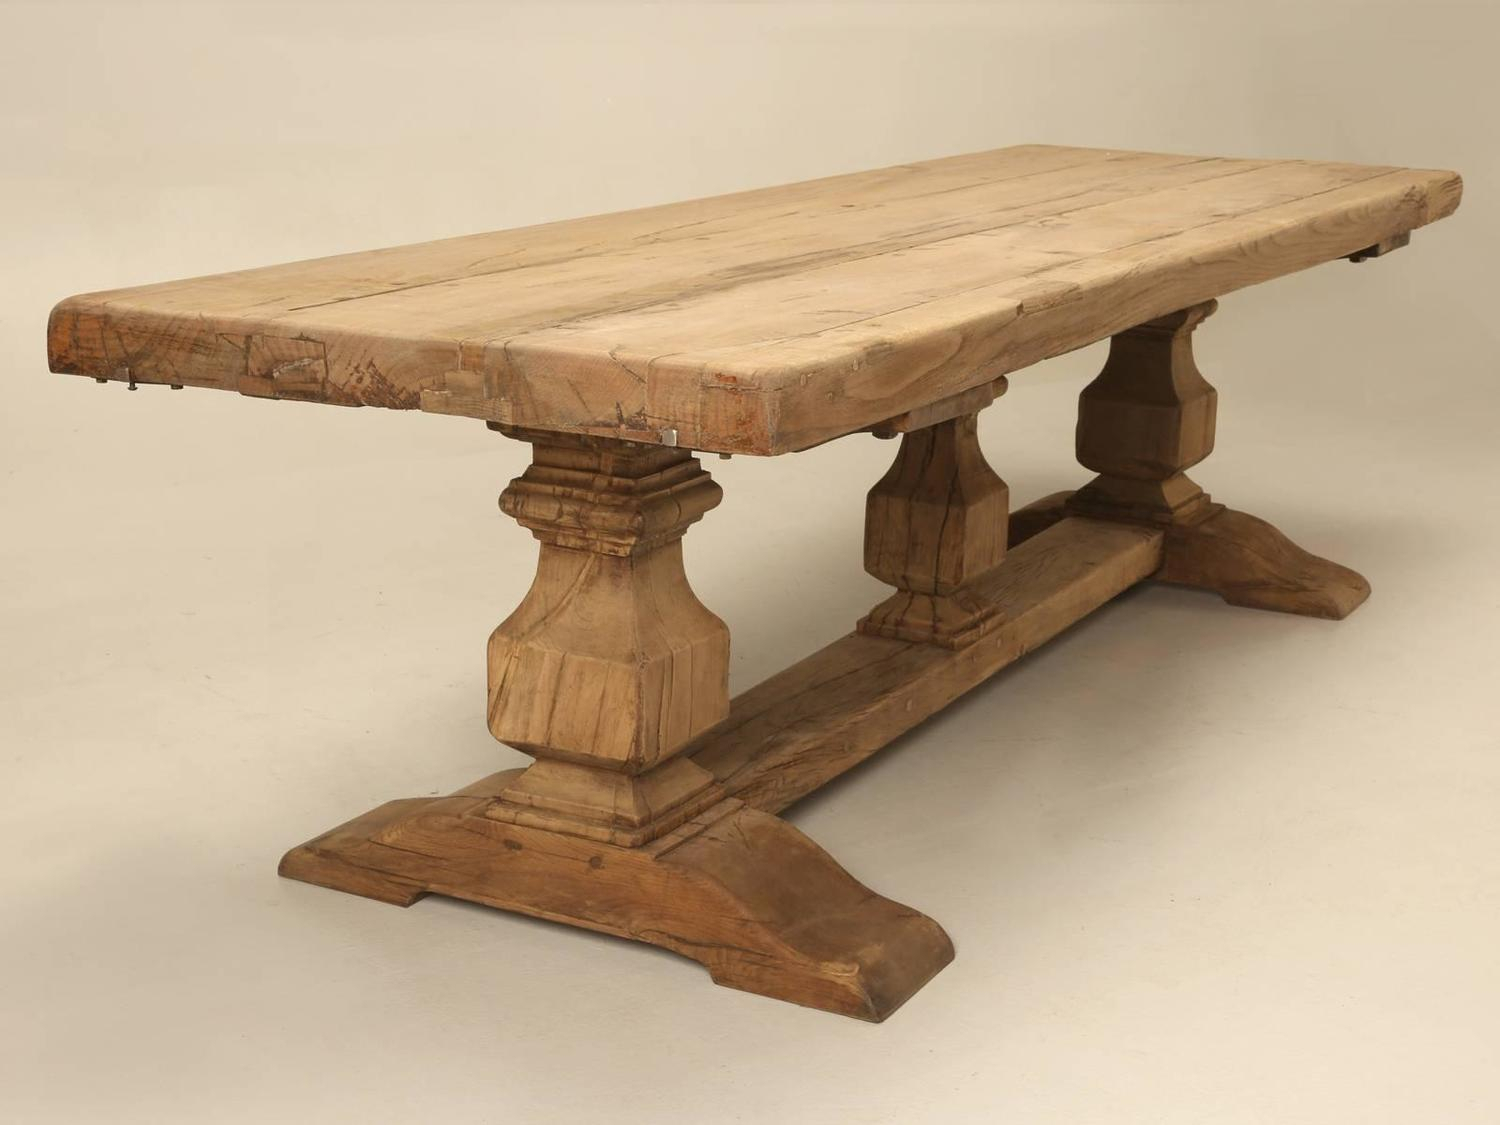 French Trestle Antique Dining Table For Sale At 1Stdibs Inside Latest Trestle Dining Tables (Photo 15 of 15)